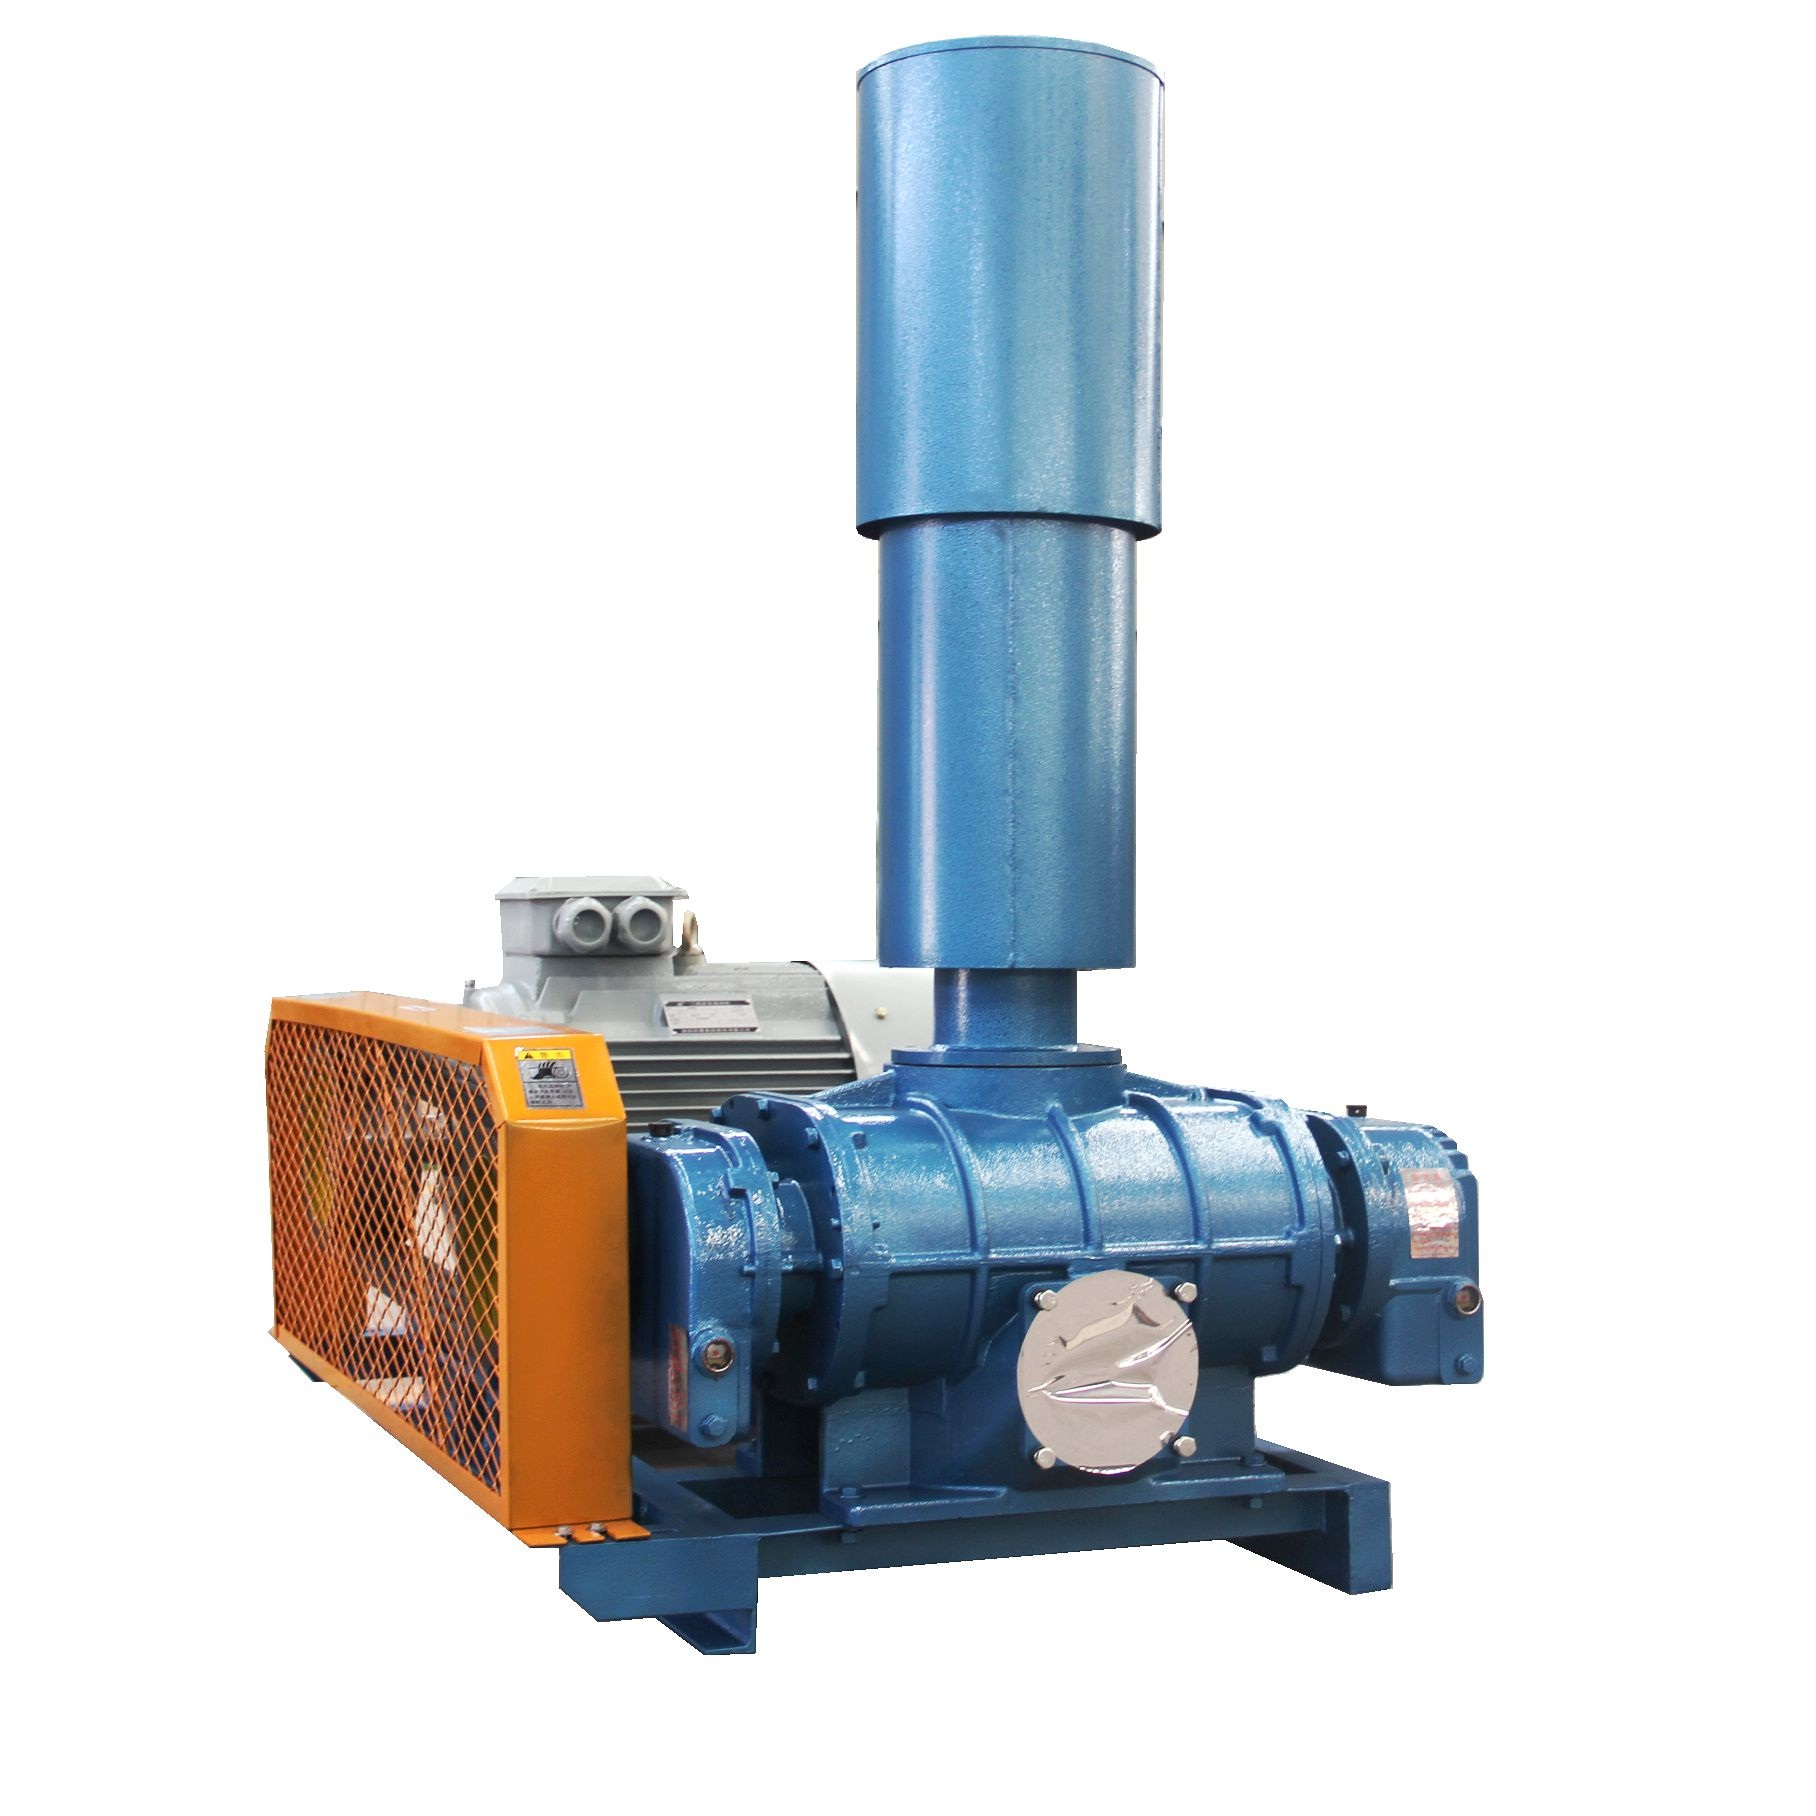 Roots blower for water treatment_3